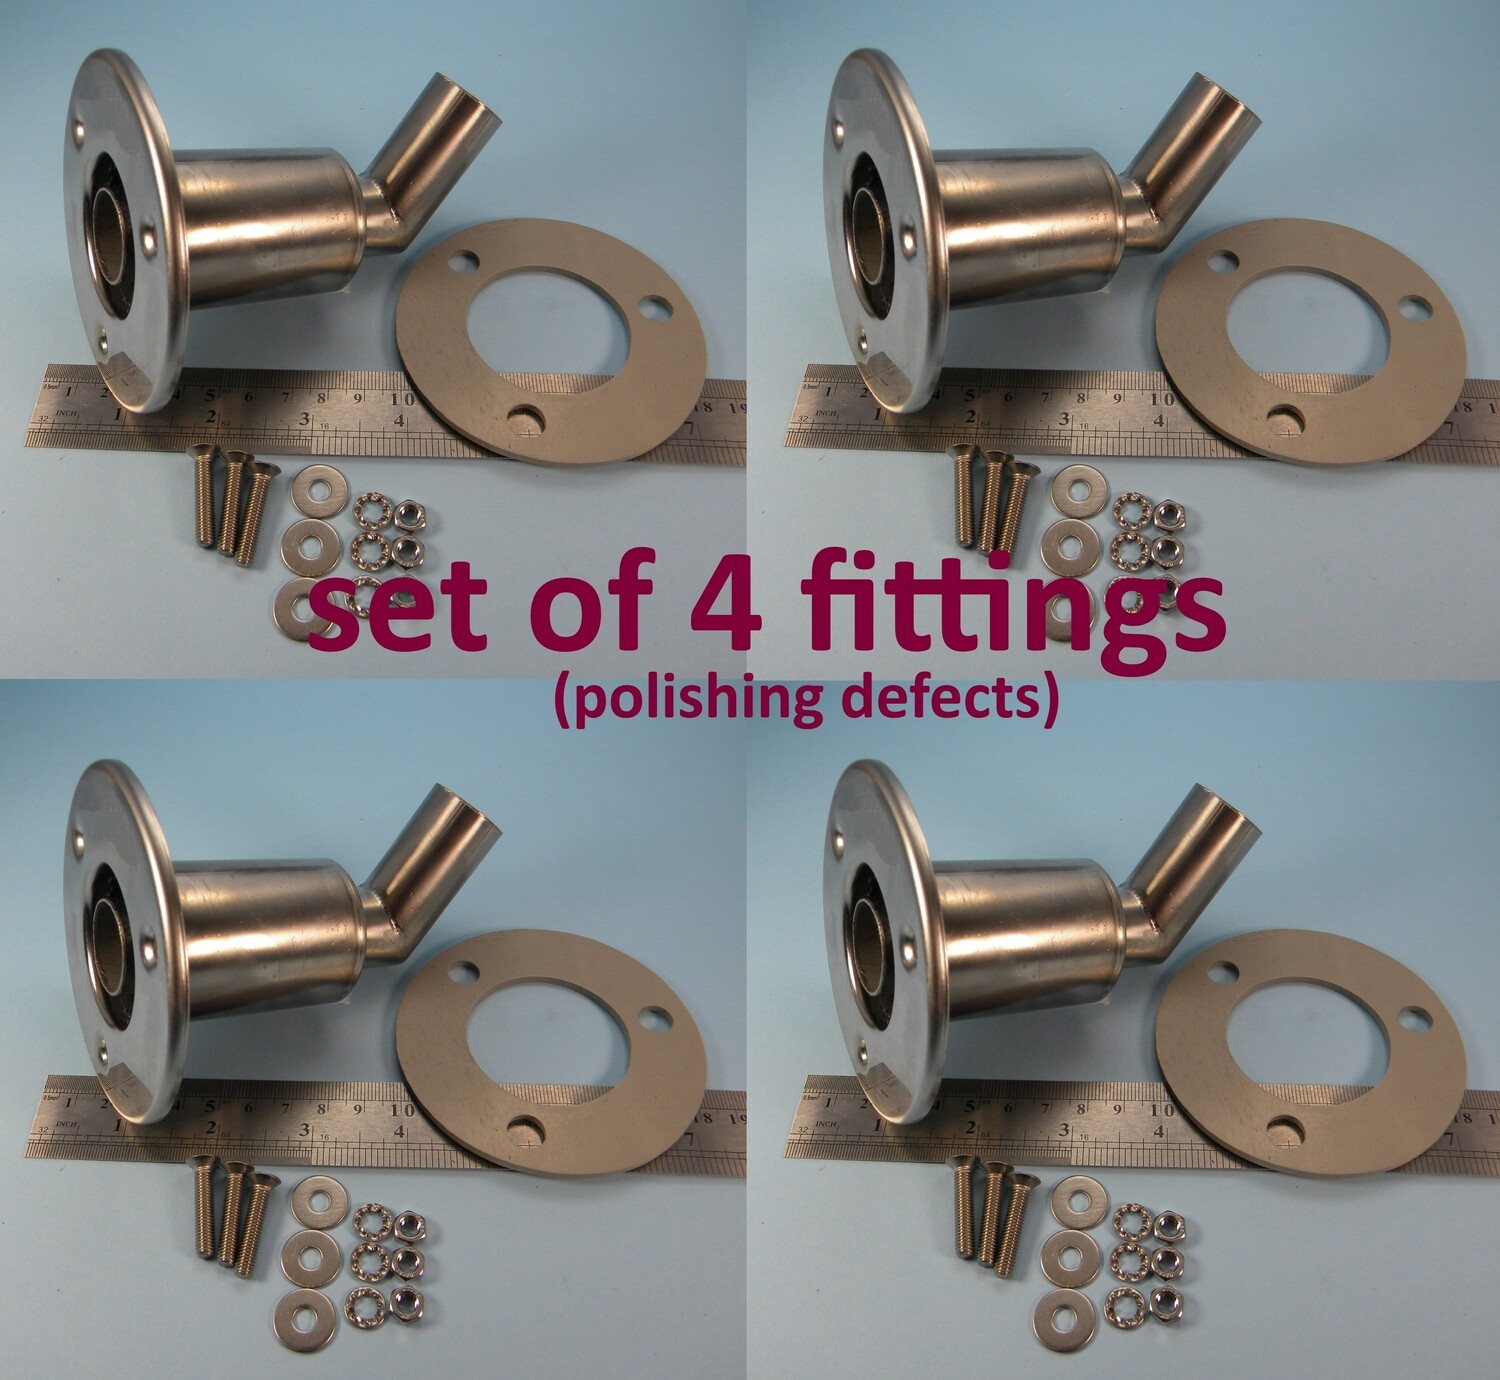 Set of 4 fittings (SALE, slight polishing defects)